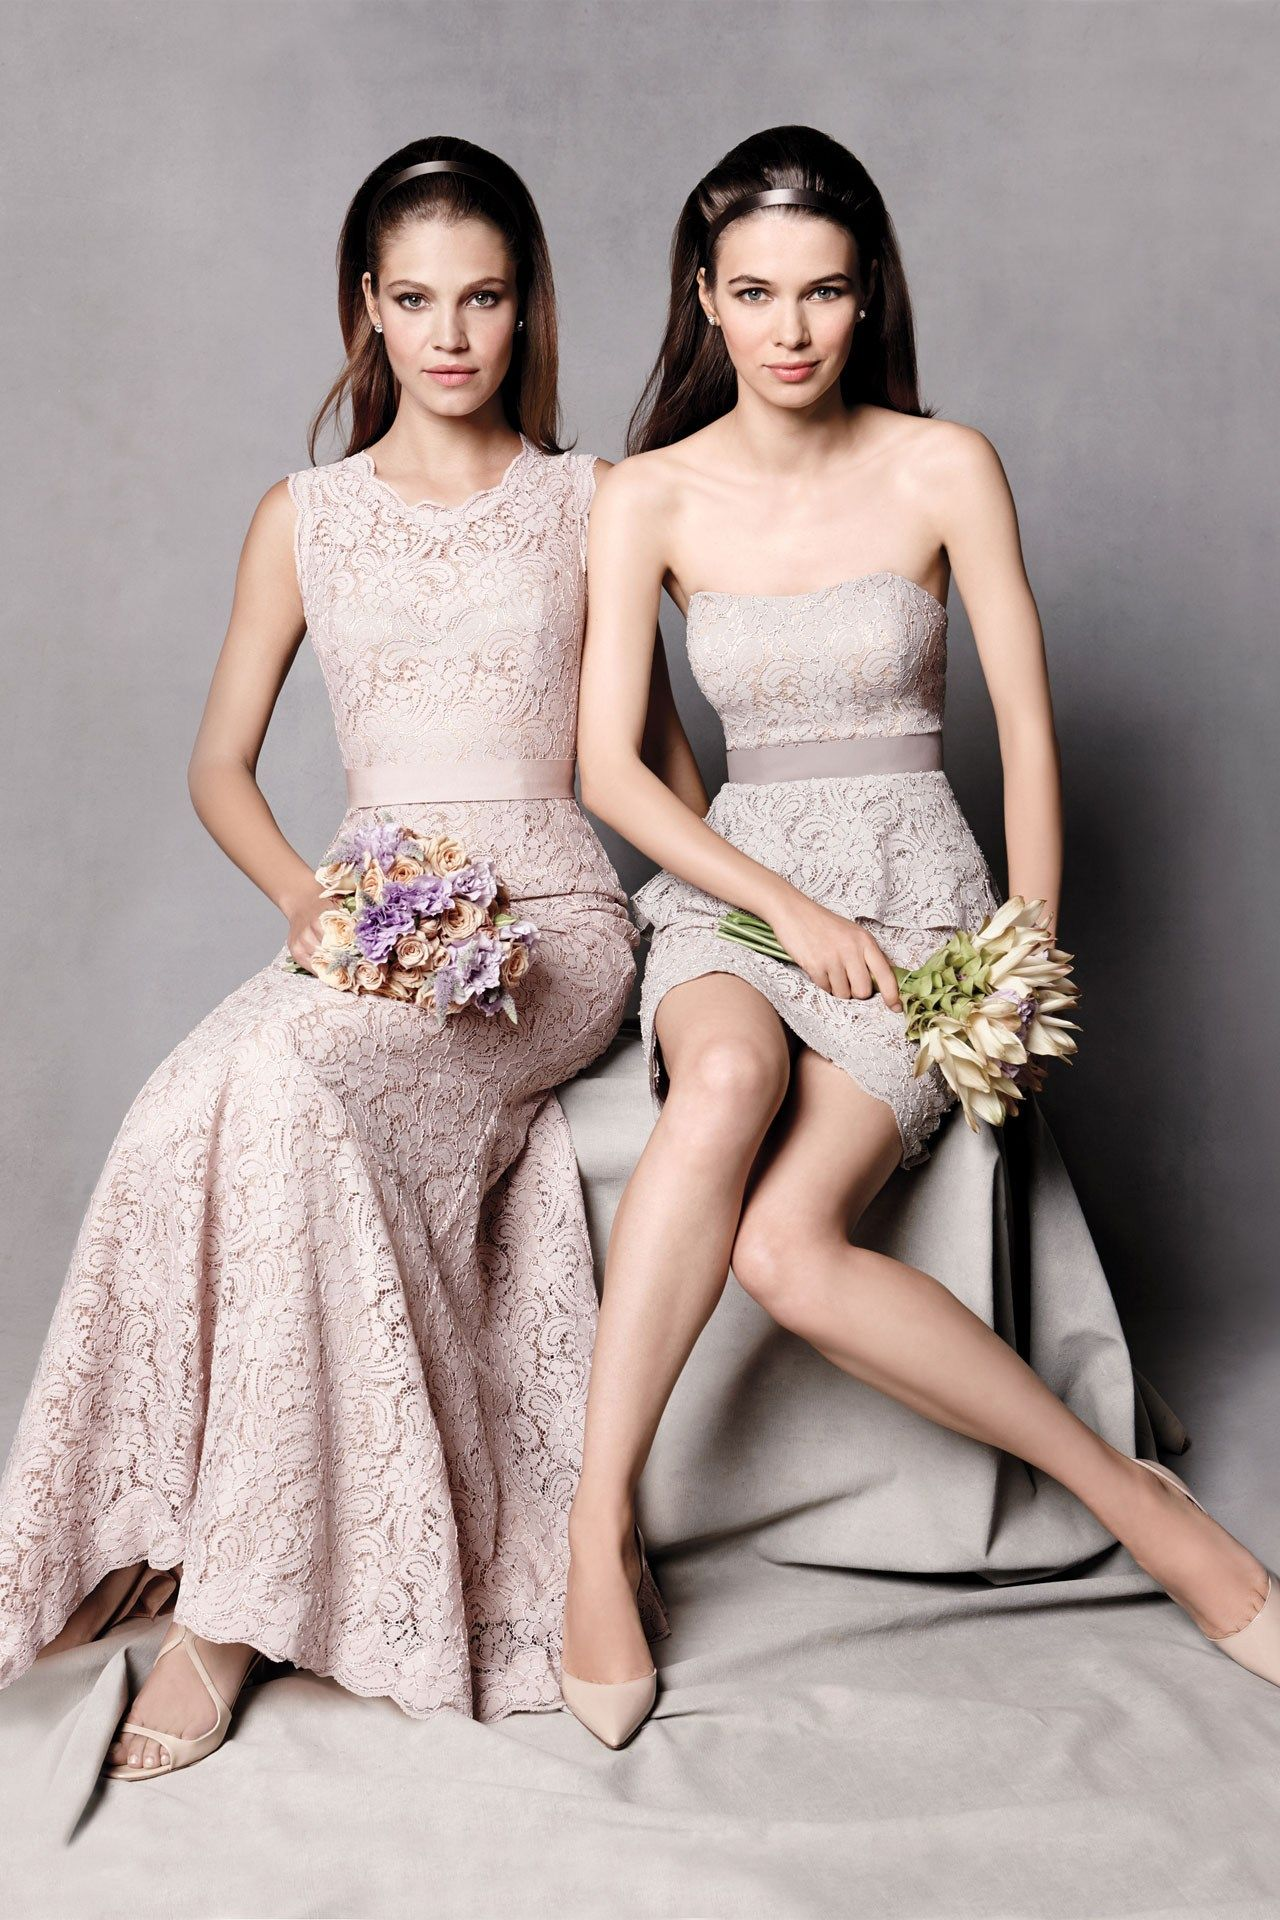 Bridesmaid Dresses Latest Styles & Ideas BridesMagazine